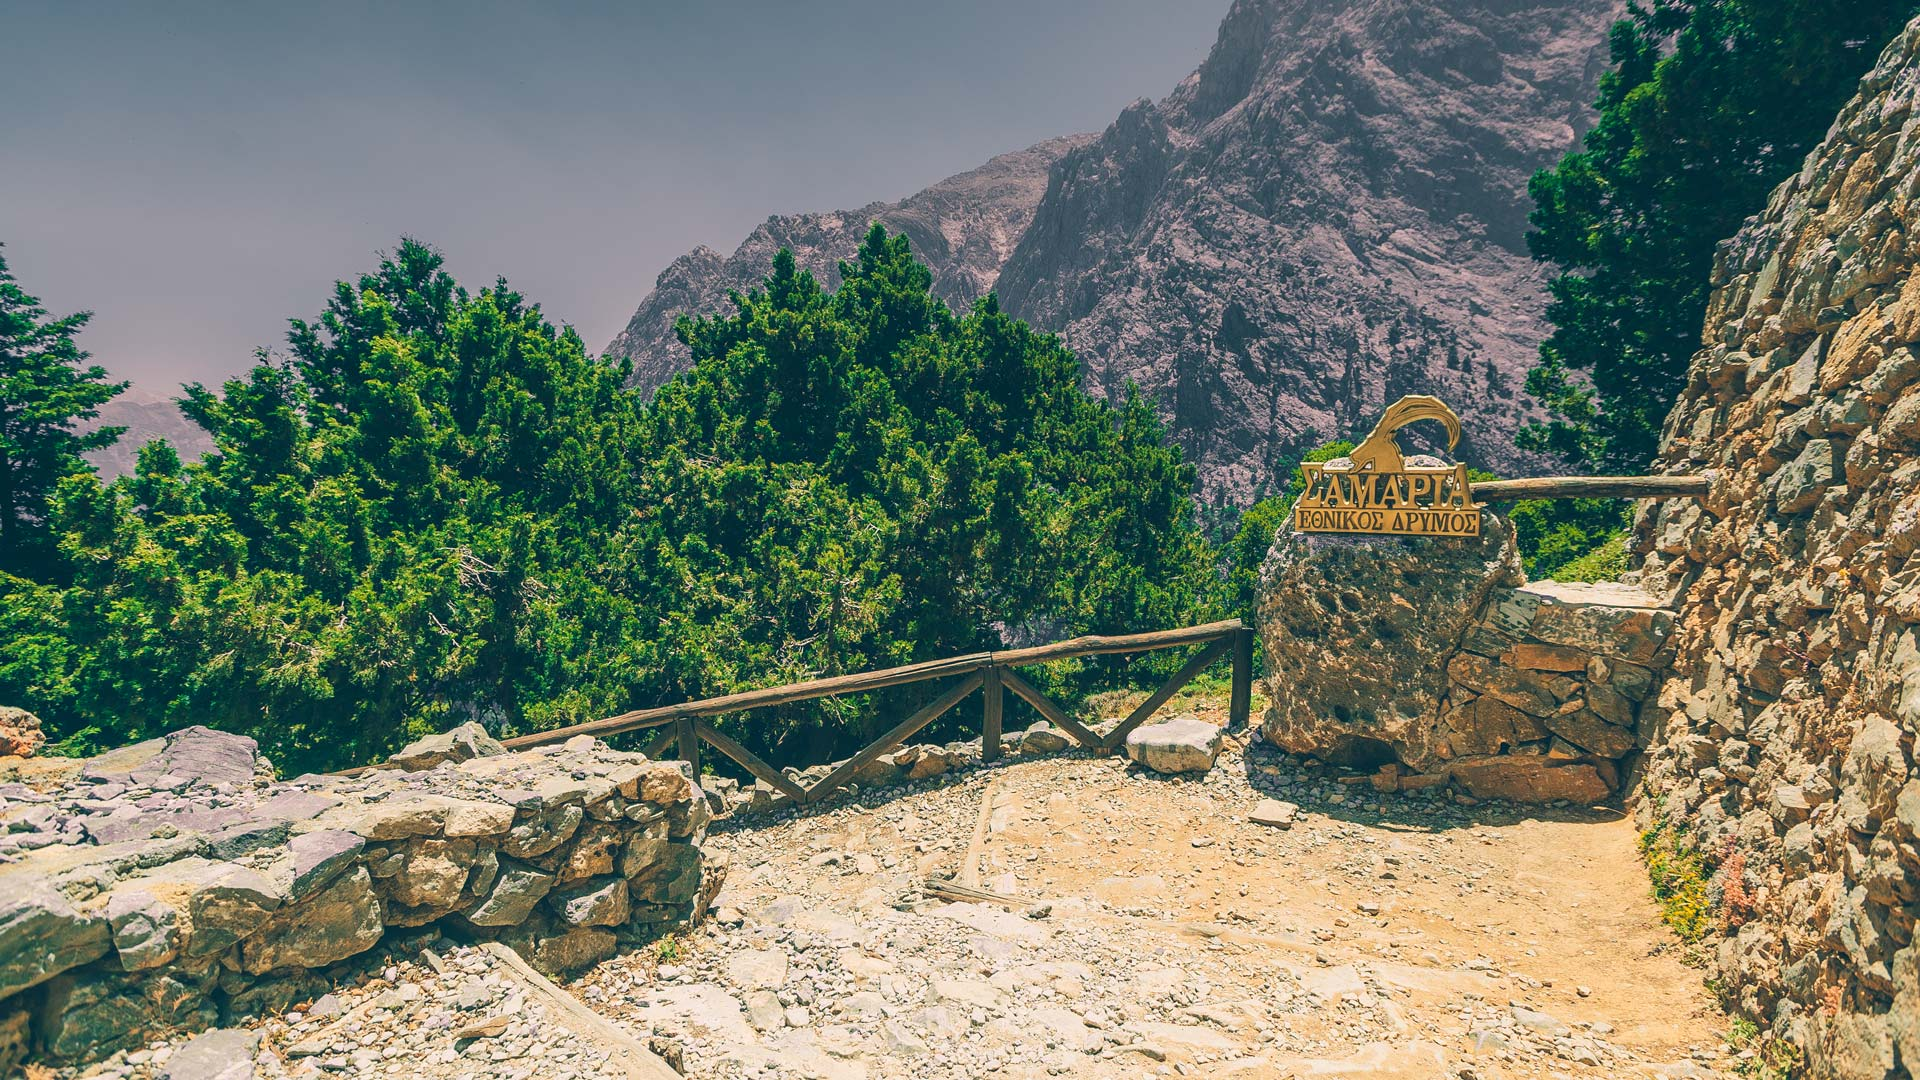 In Xyloskalo, you will find the entrance of the National Park of Samaria